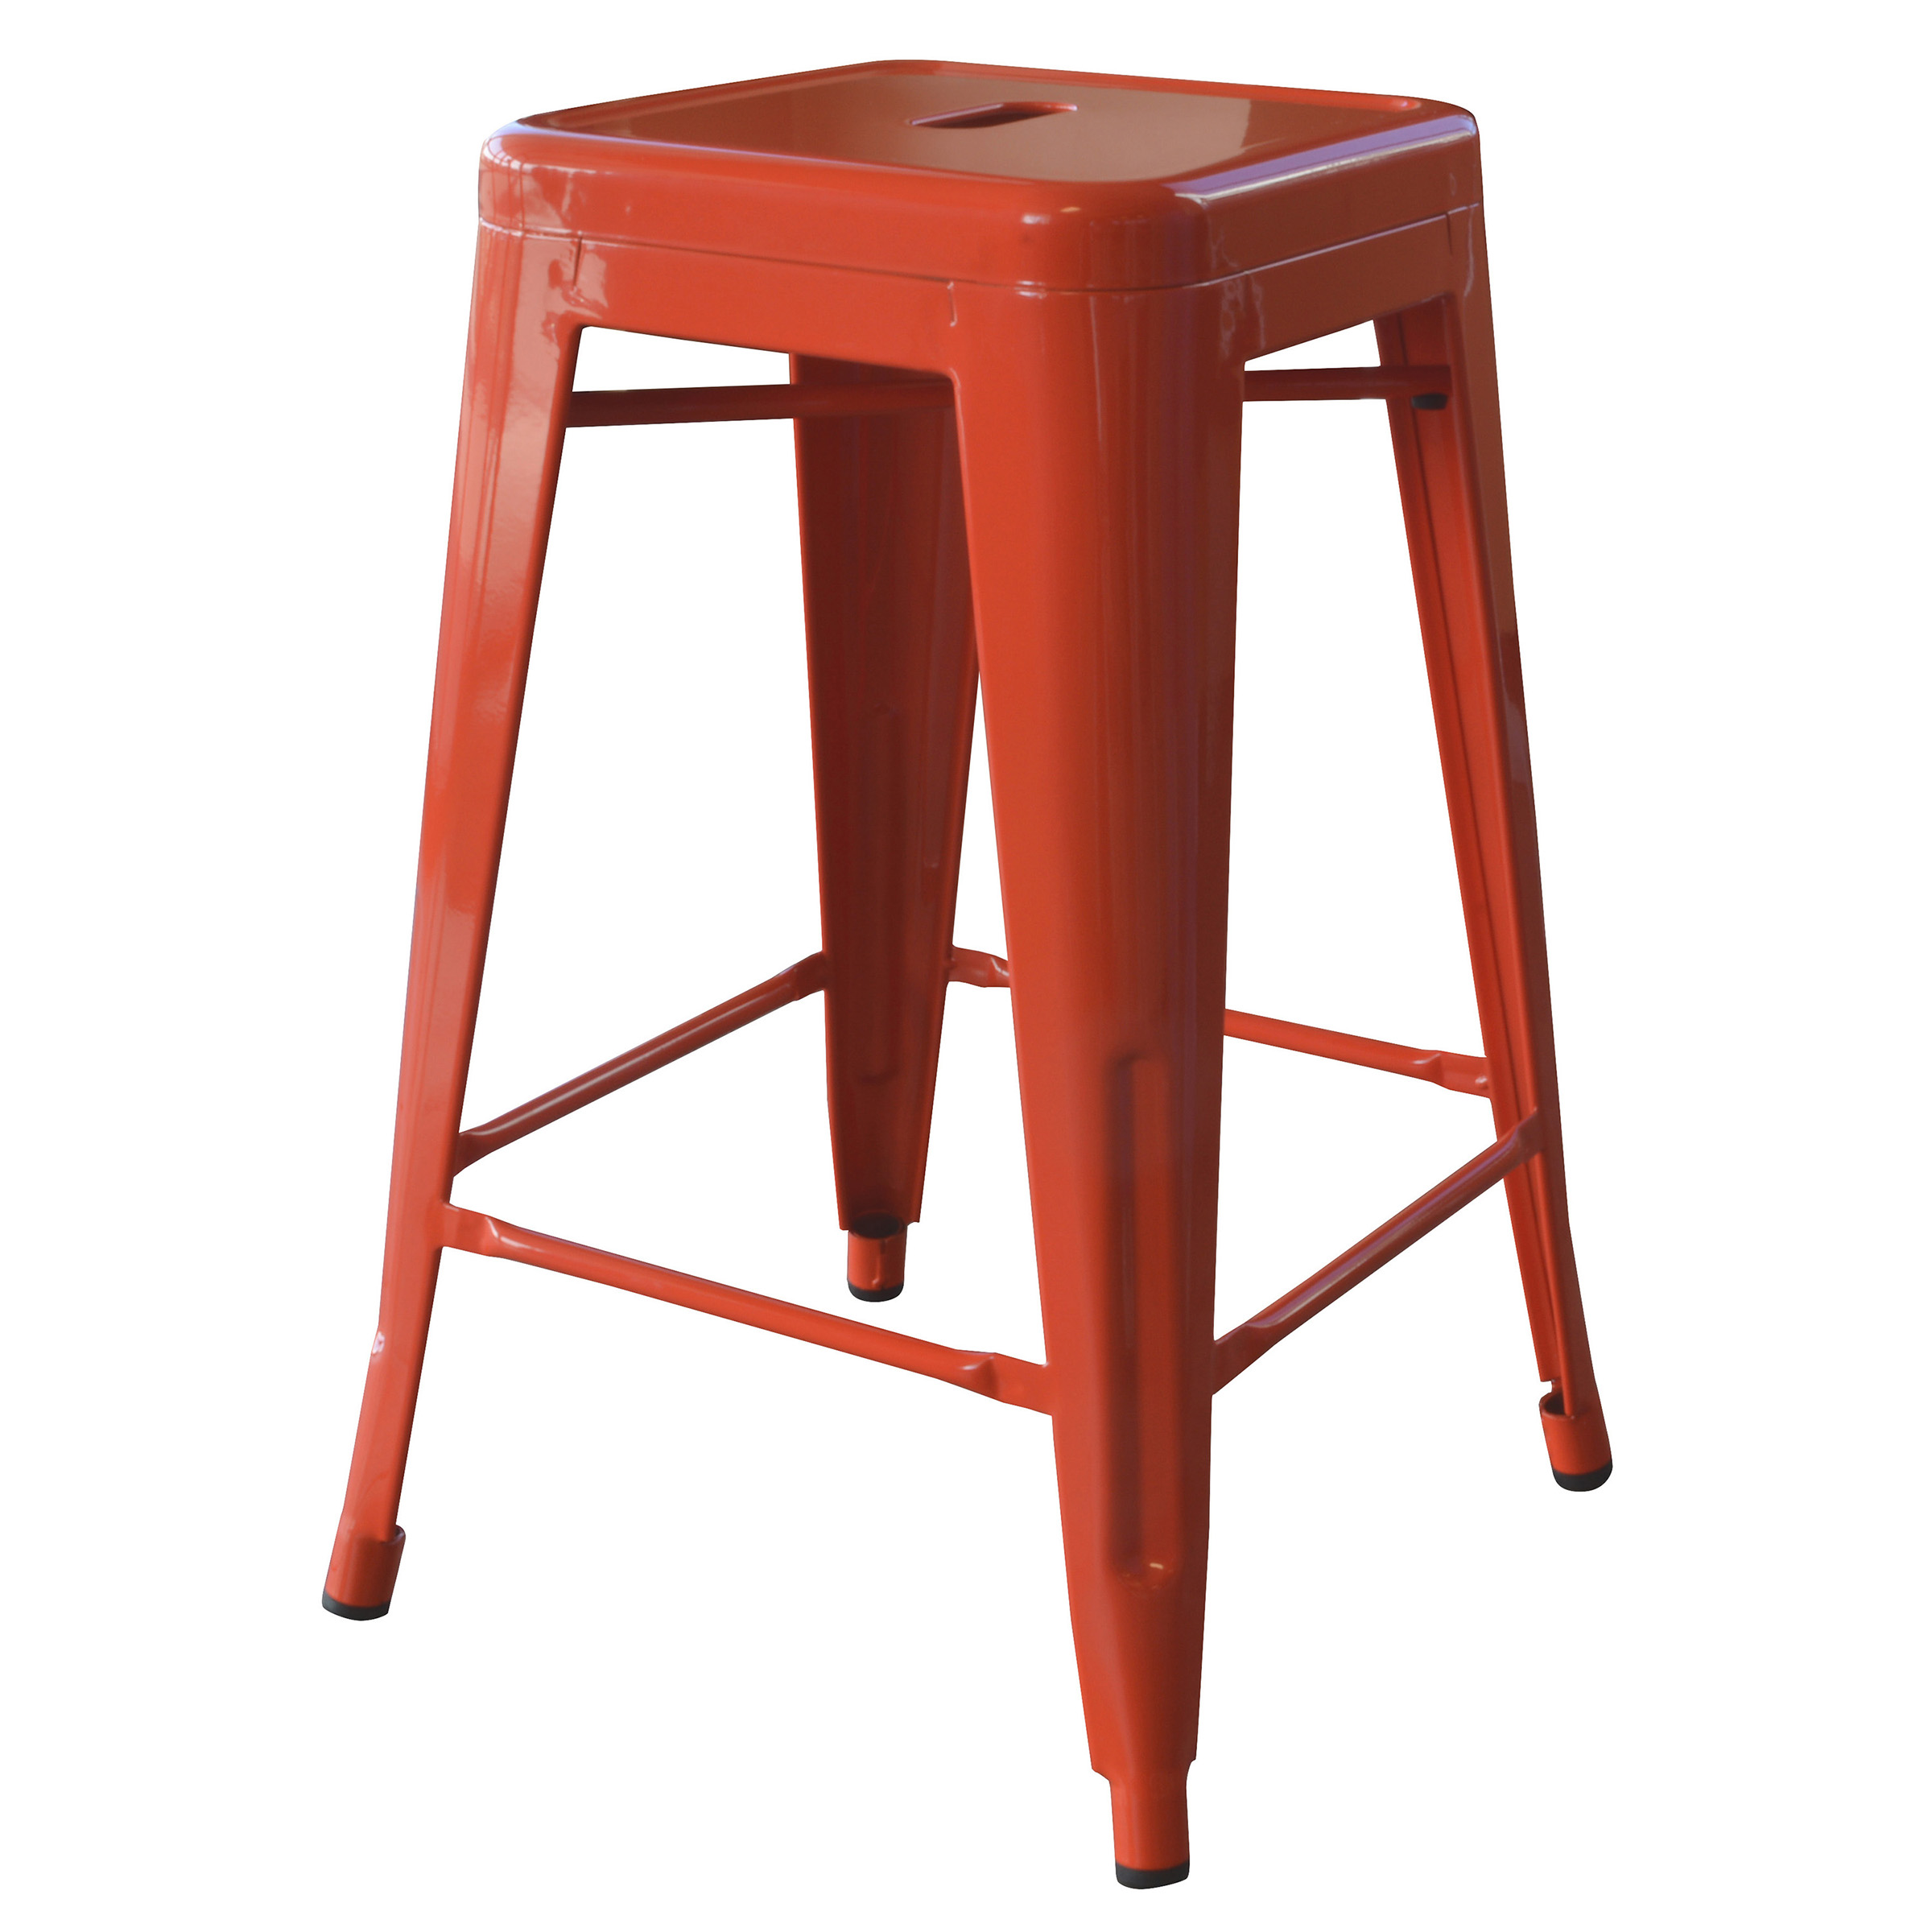 Commercial bar stools clearance bar stools clearance buy for Bar stools clearance